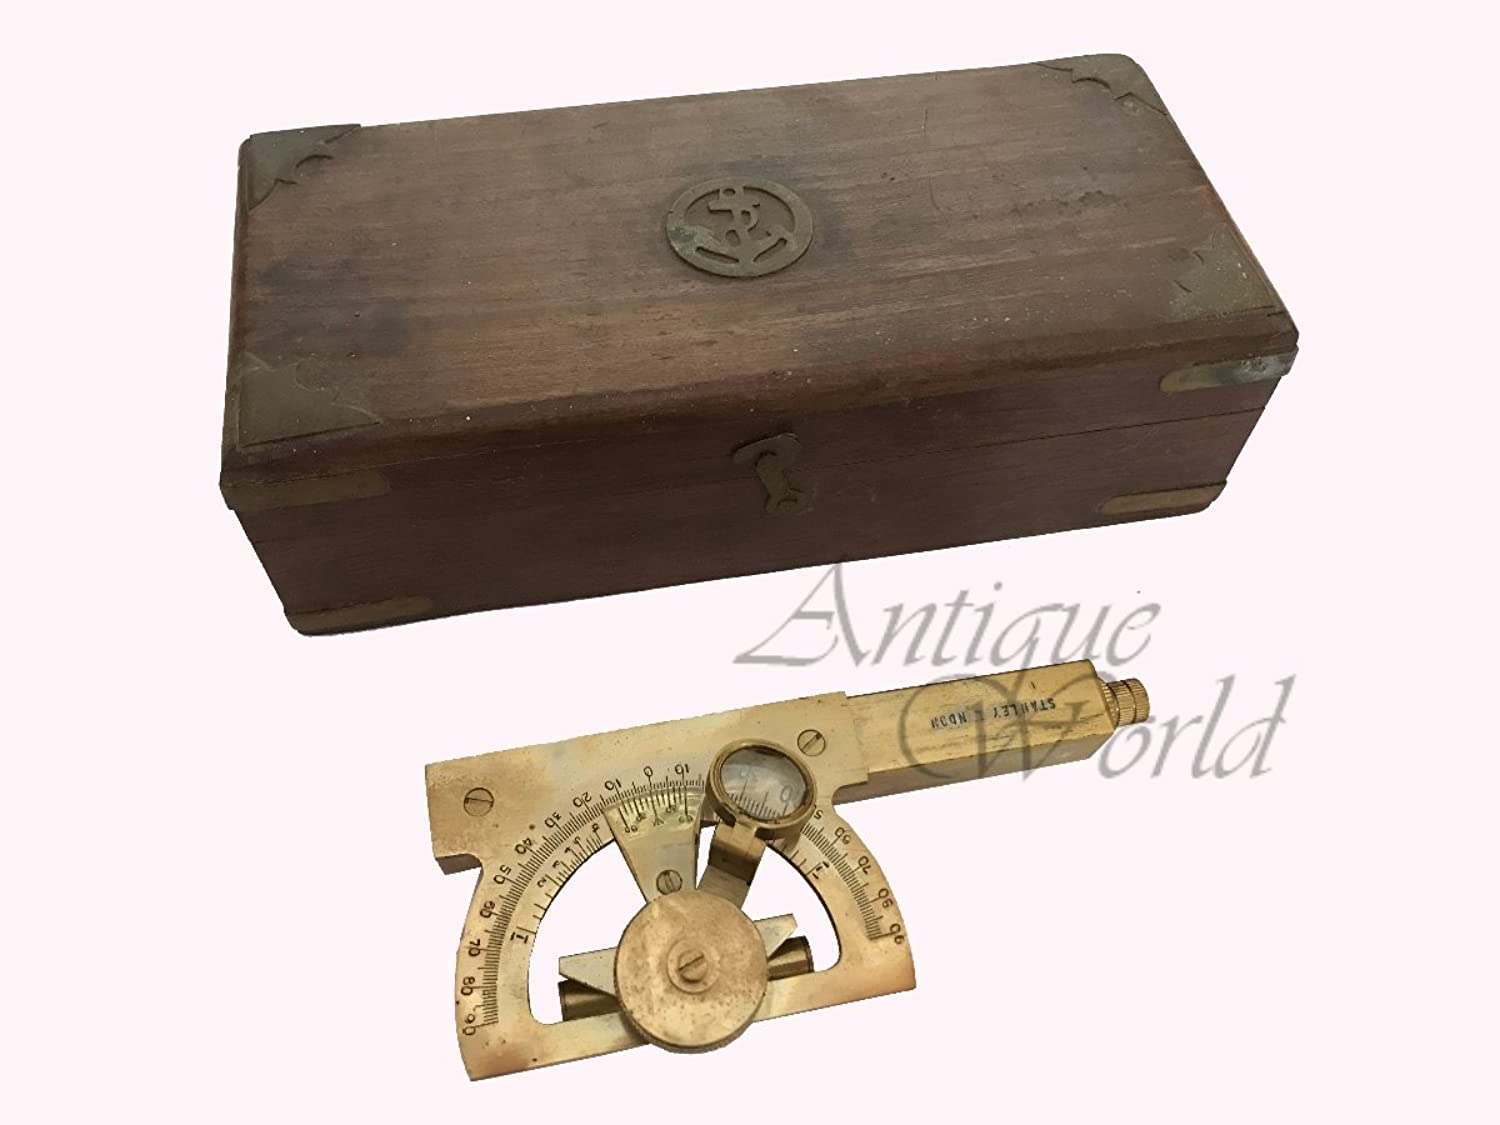 Antiques World Old Stock Antique Three In One Set (Telescope - Road Level – Sextant) Finely Polished Brass Maritime Nautical Sextant AWUSATC 017